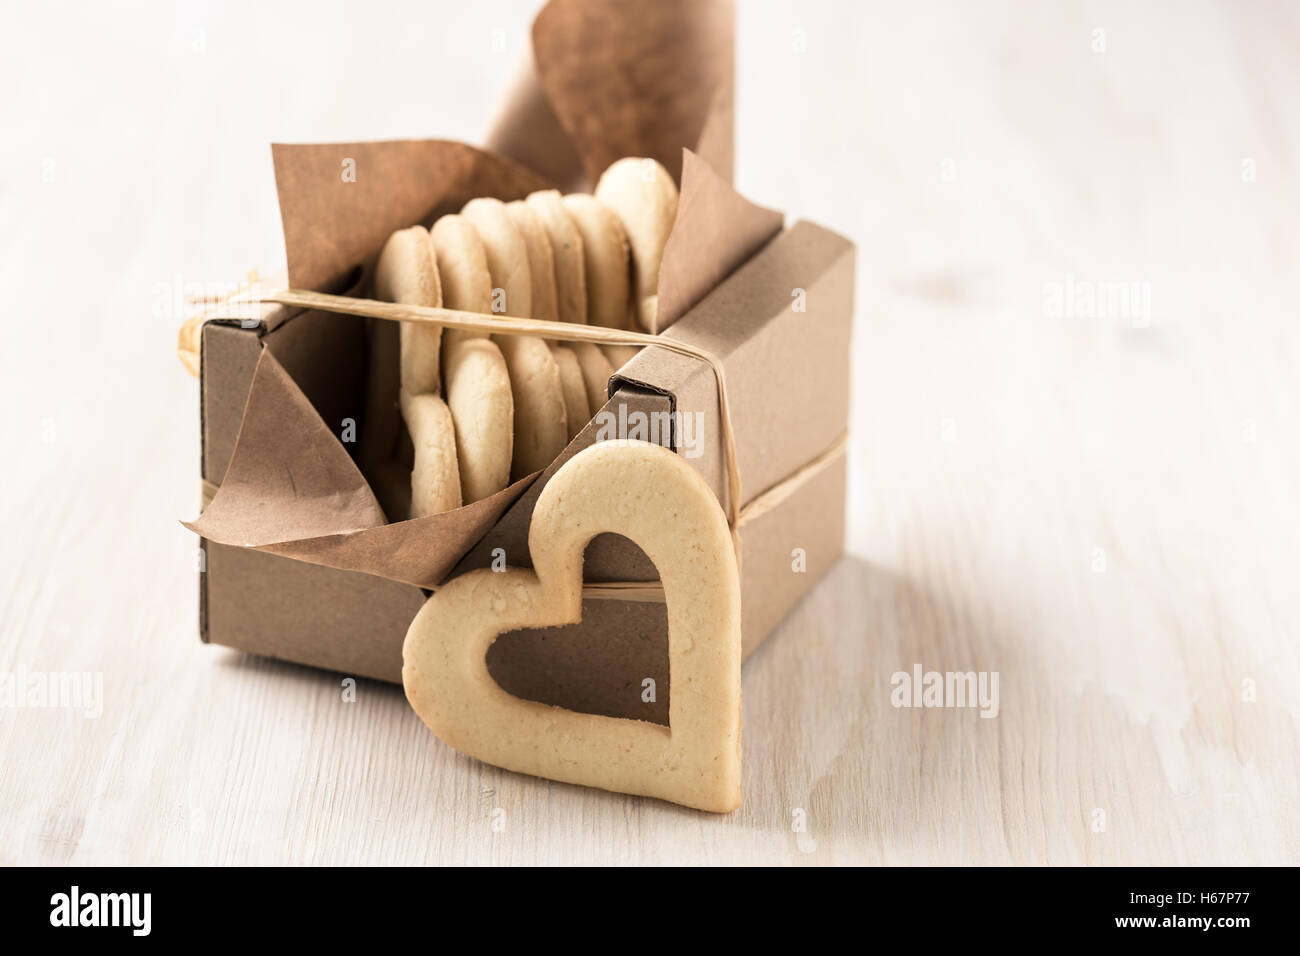 Gift Box Filled With Homemade Heart Cookies For Valentines Day On